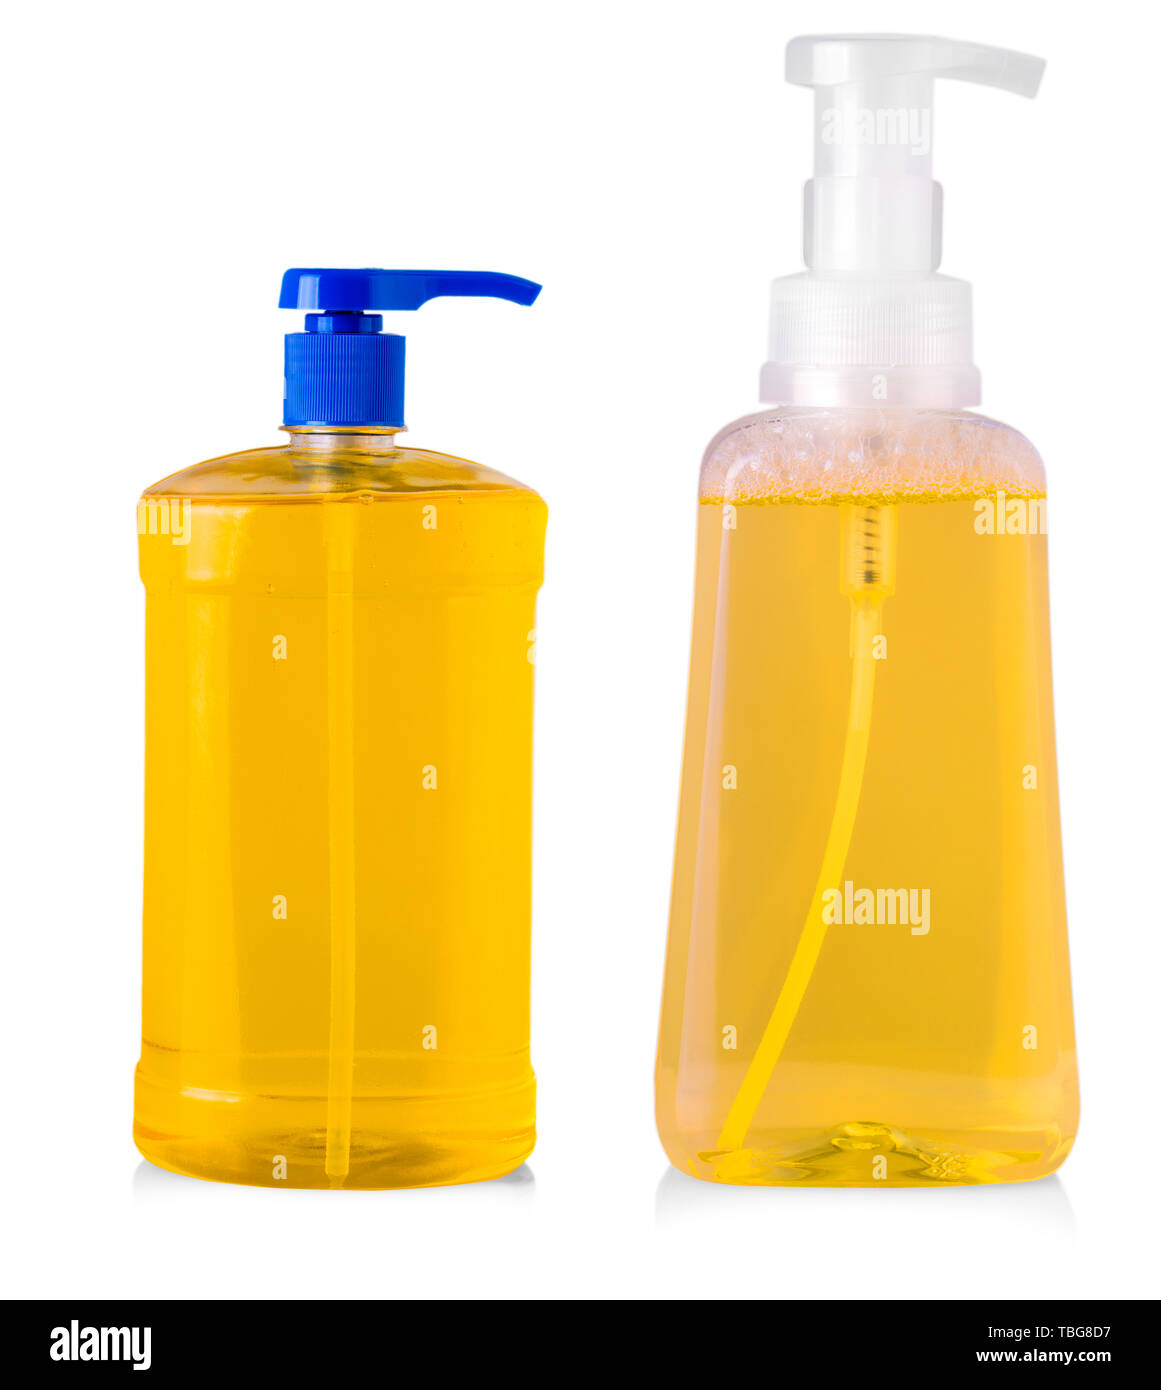 Cleaning Agent Bottles Stock Photos Cleaning Agent Bottles